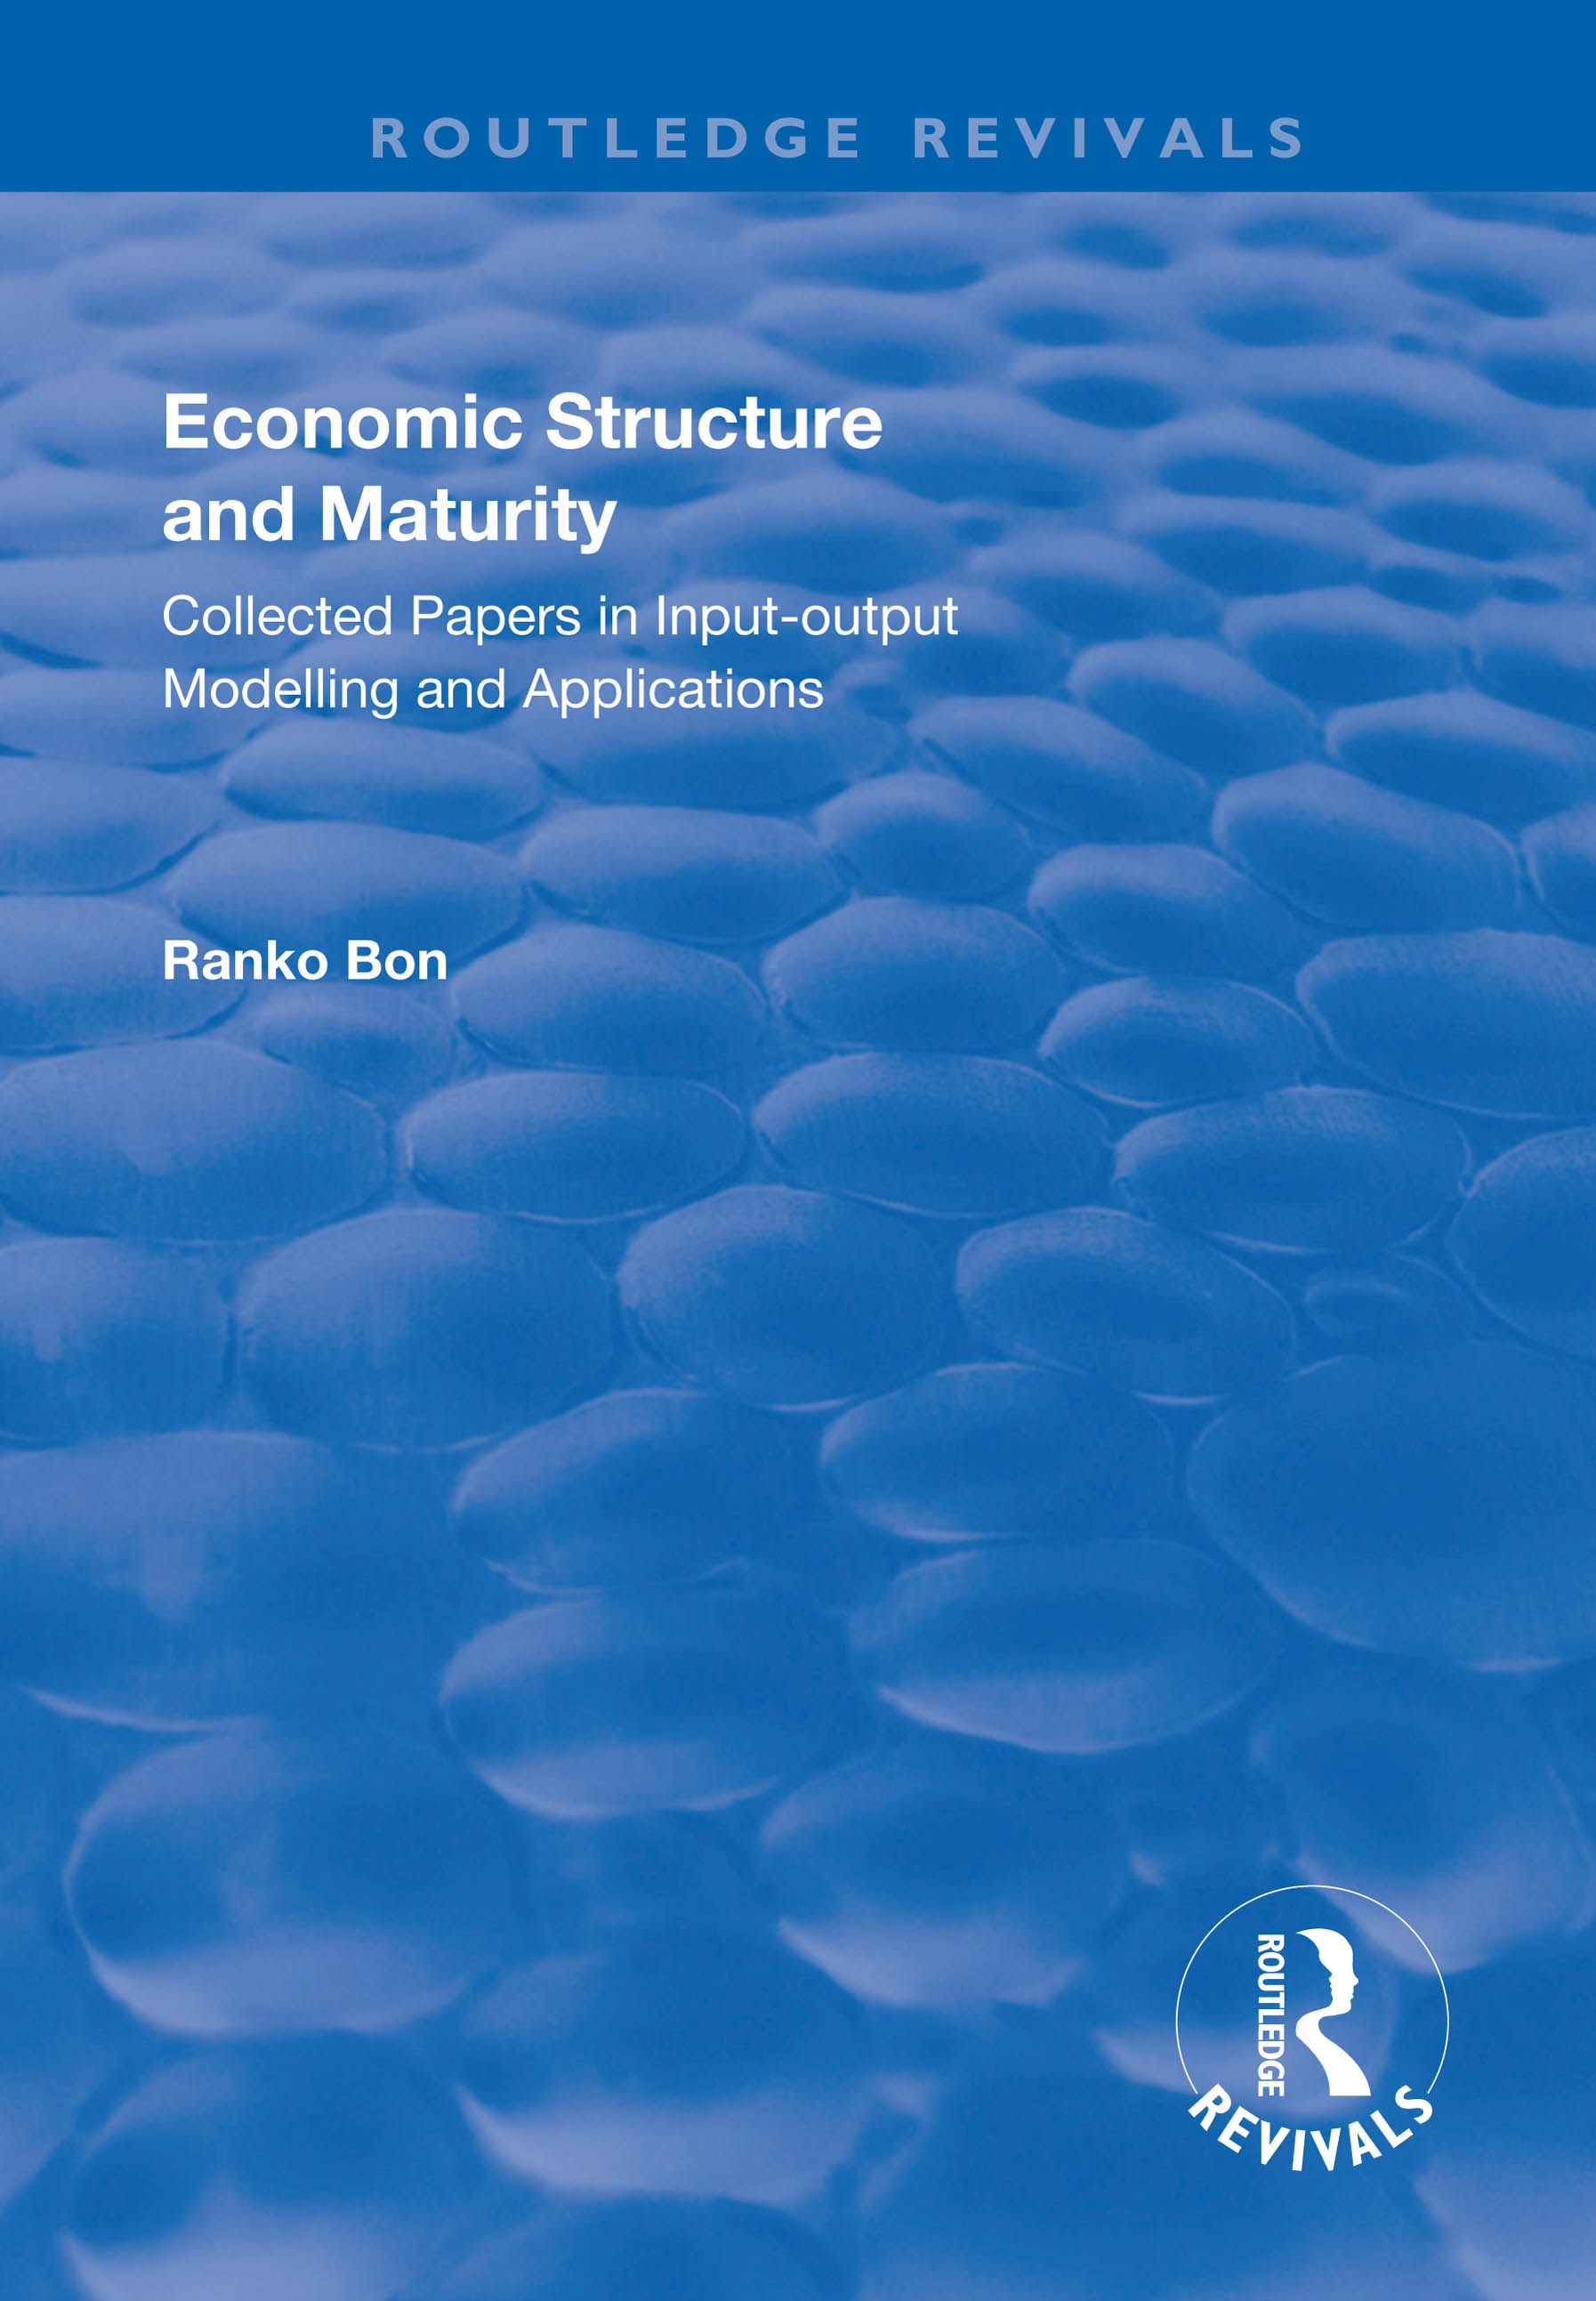 Economic Structure and Maturity